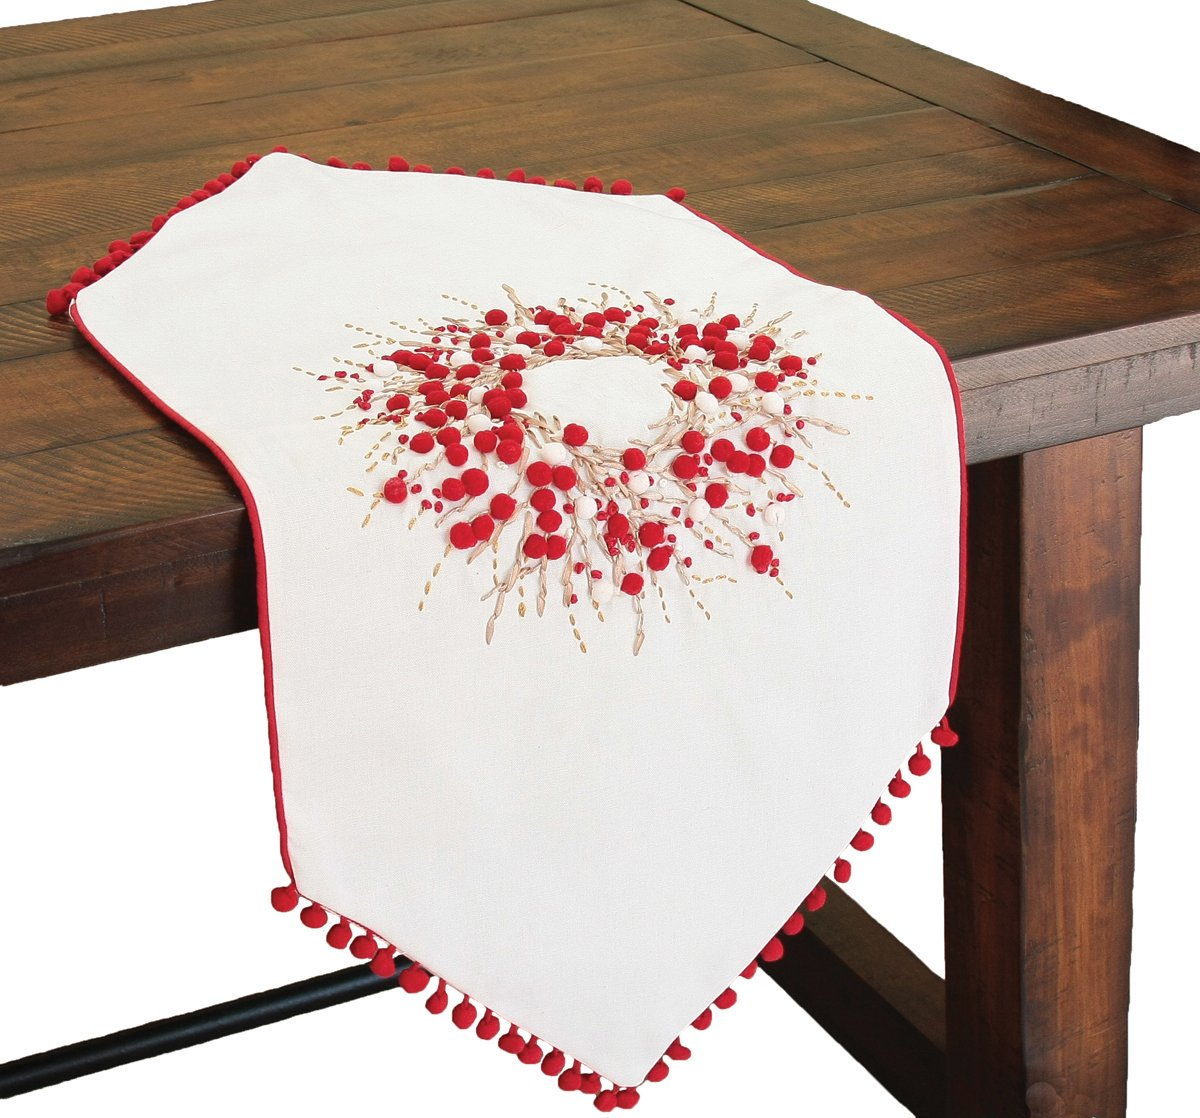 Xia Home Fashions Handmade Holiday Berry Wreath Ribbon and Pom Pom Embroidered Christmas Table Runner, 16 by 36-Inch